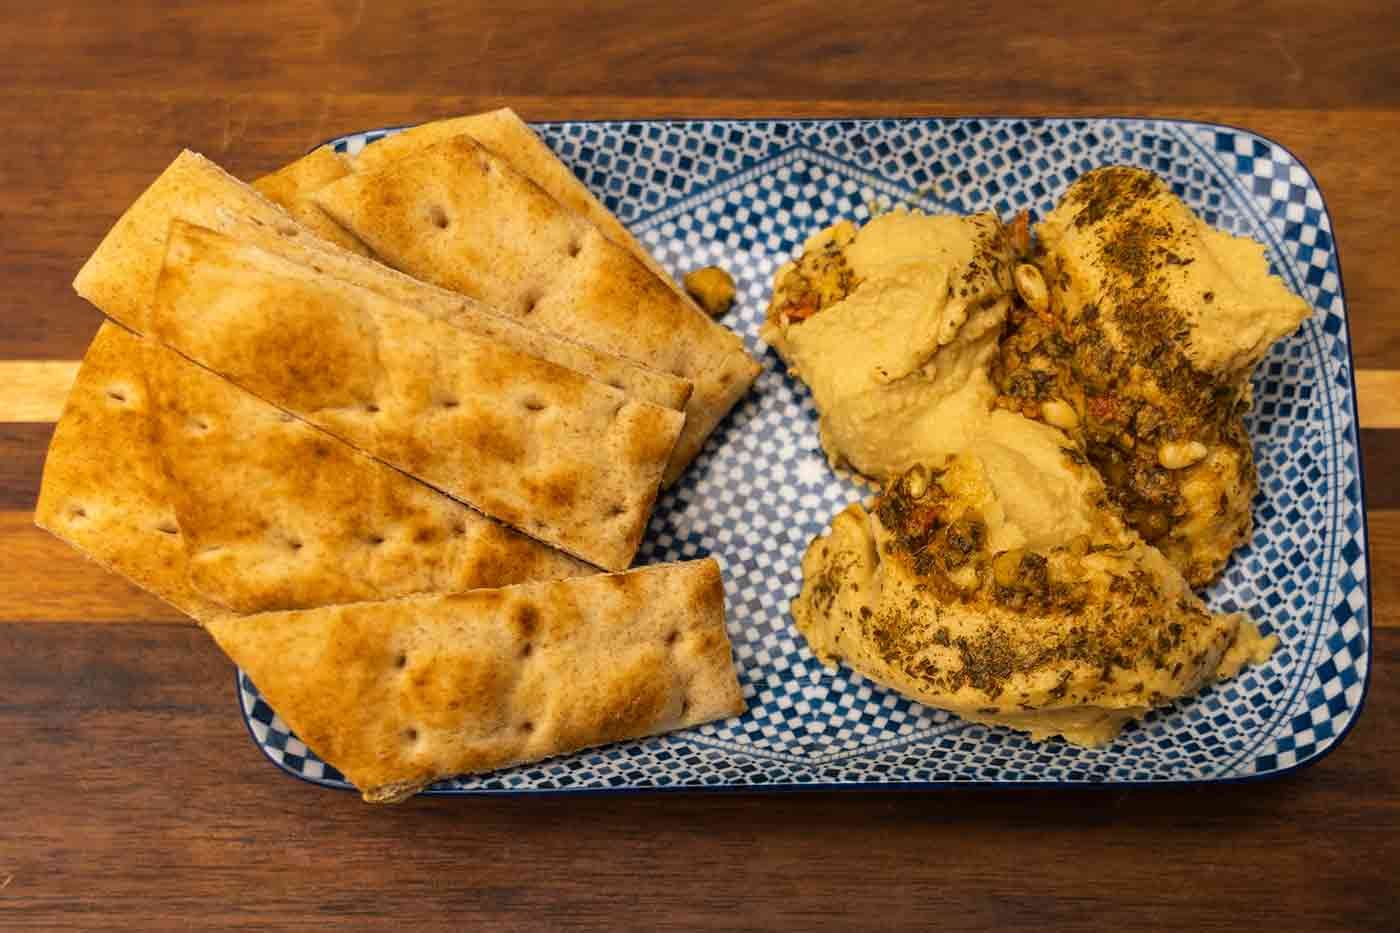 hummus and pita bread together make up a complete vegan protein